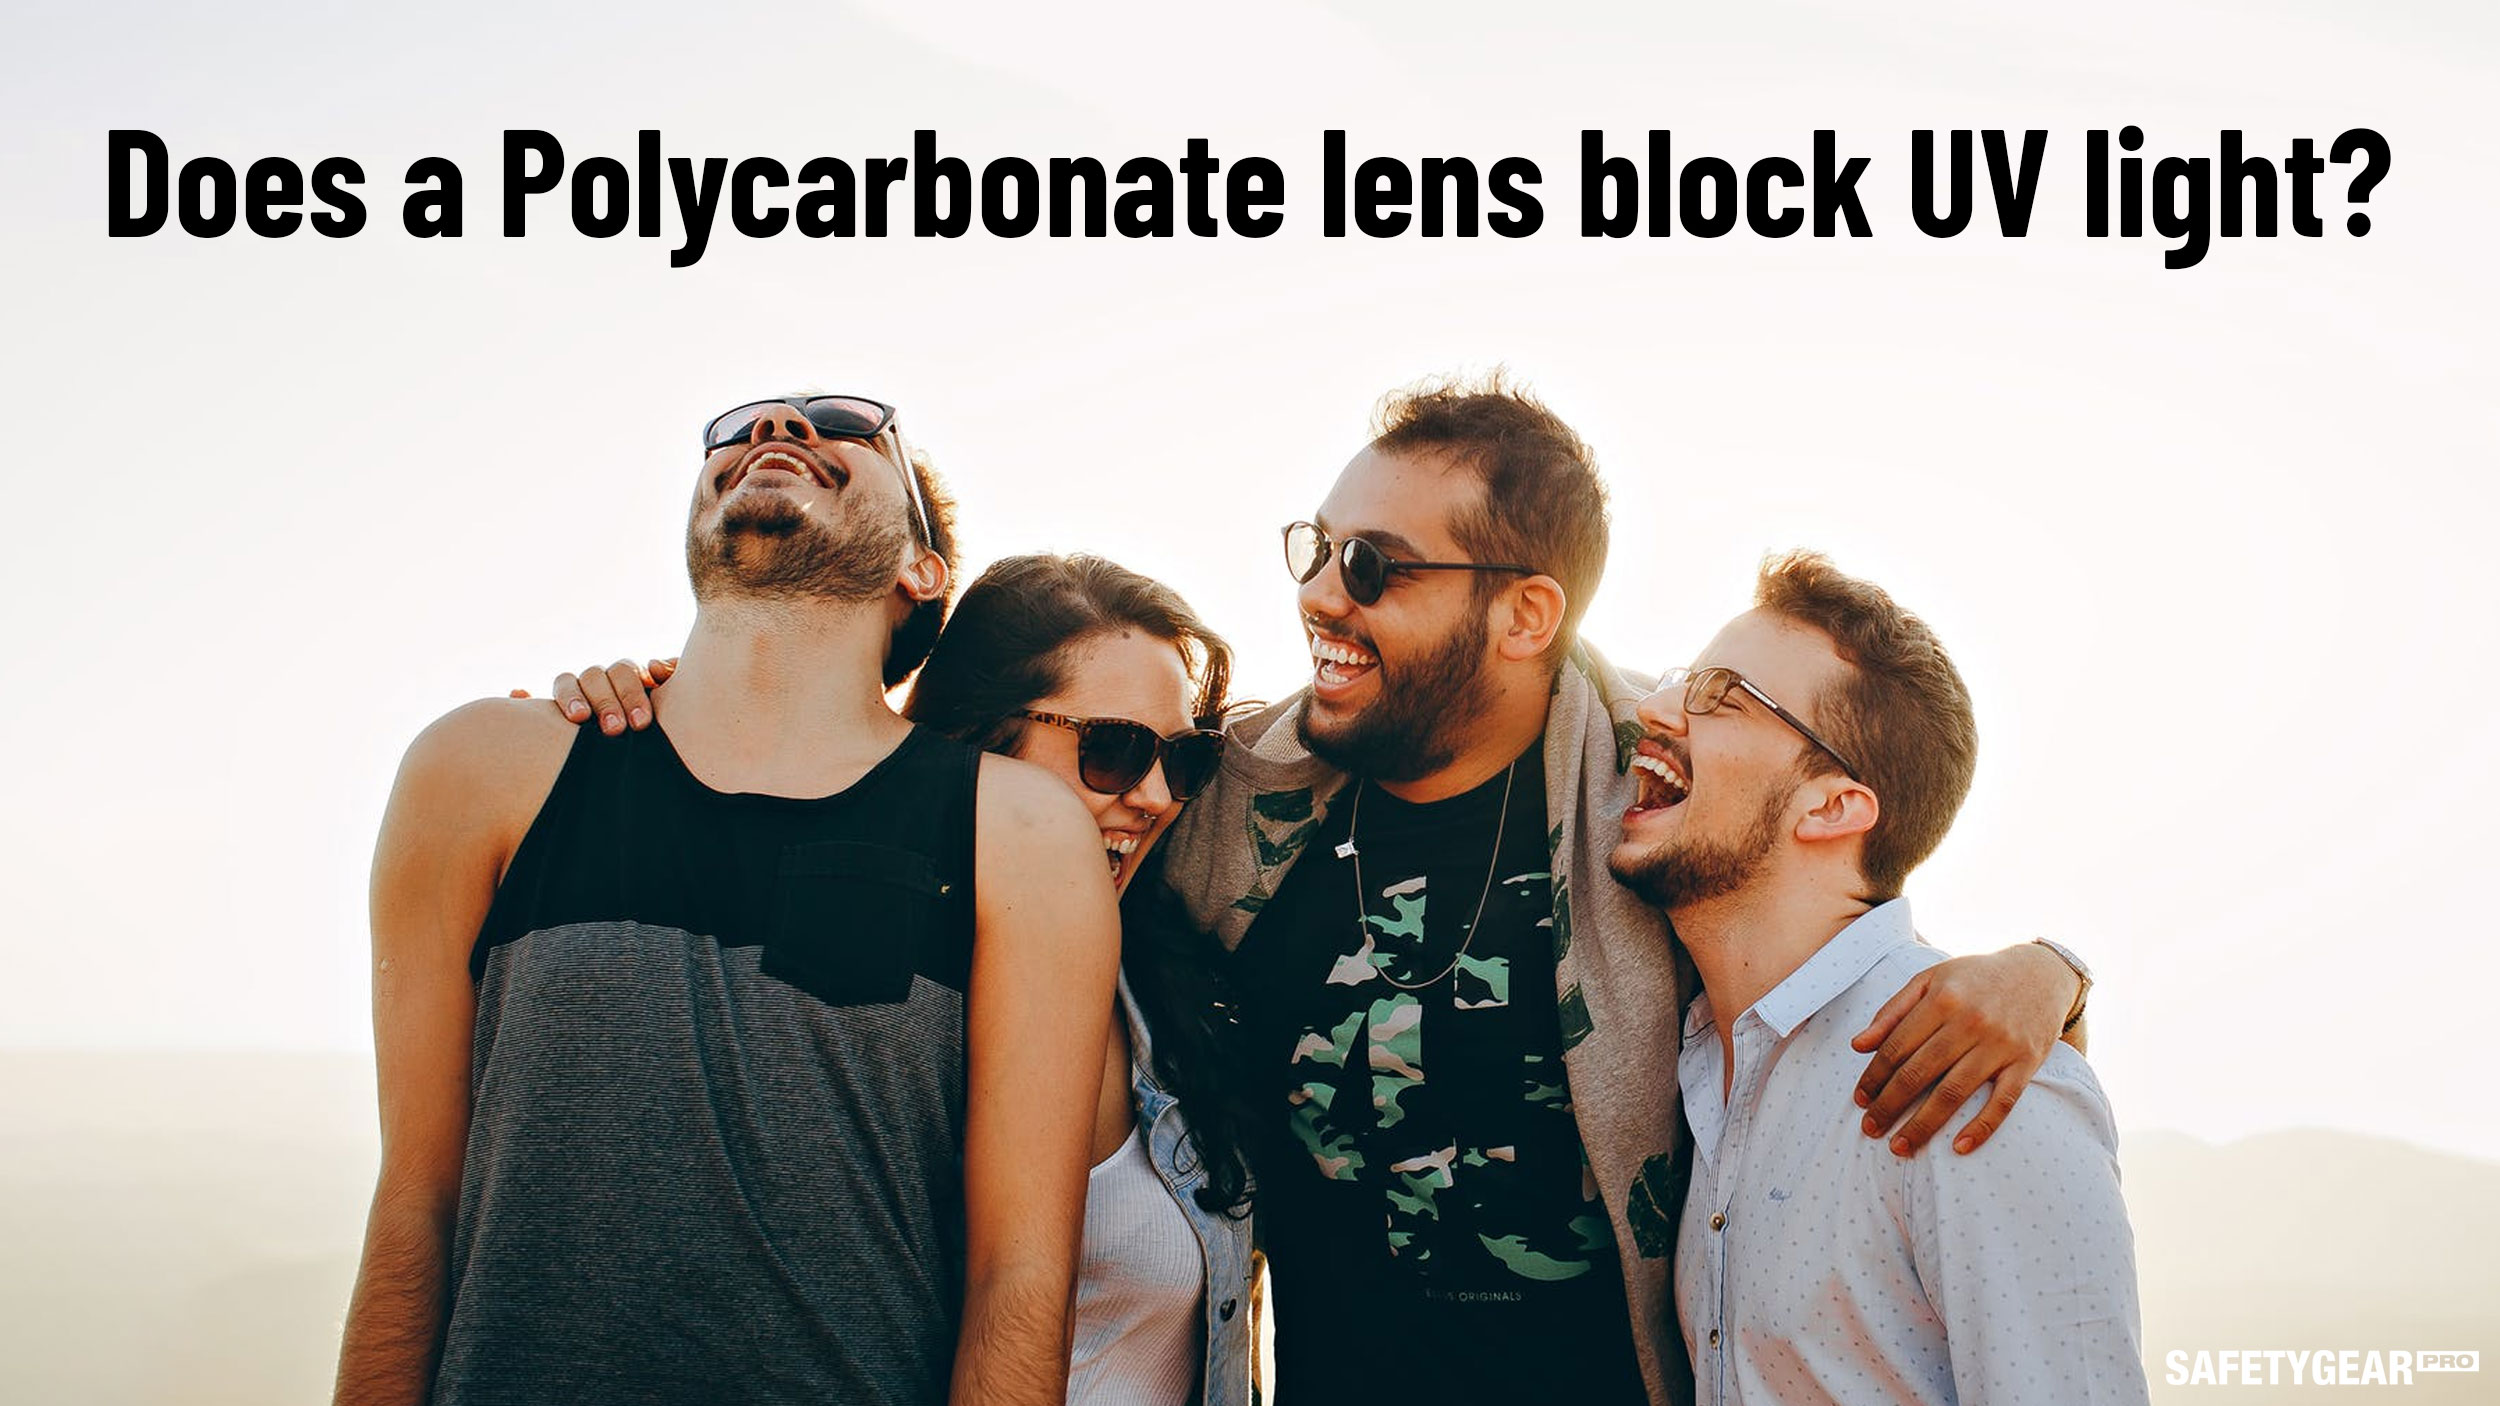 Does a polycarbonate lens block UV light?